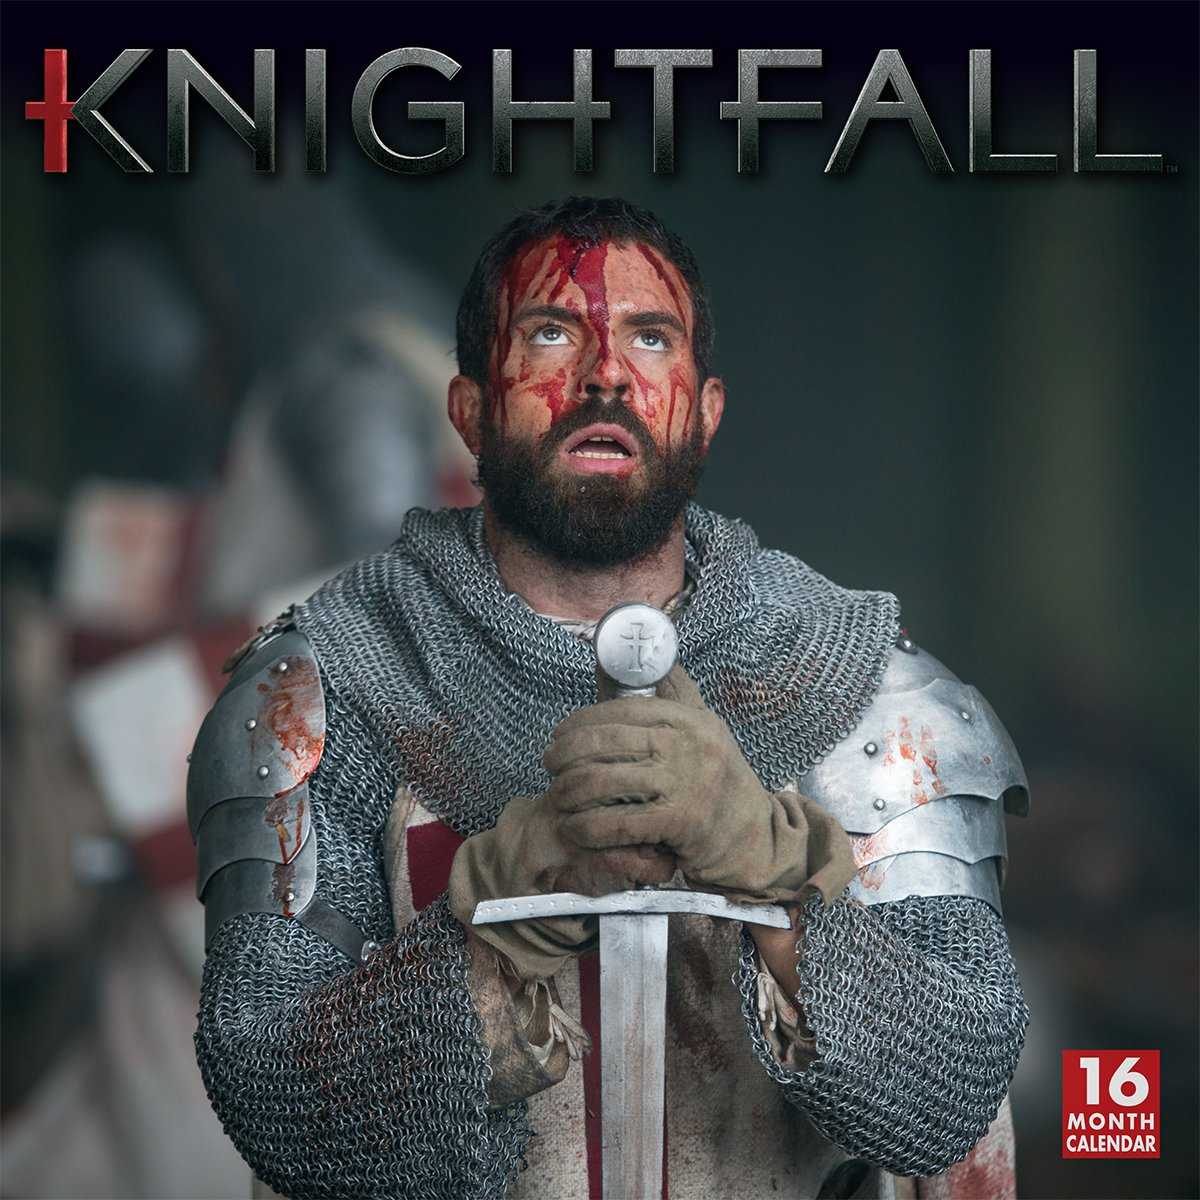 Knightfall 2019 Wall Calendar, 12 x 12, (CA-0451) ebook